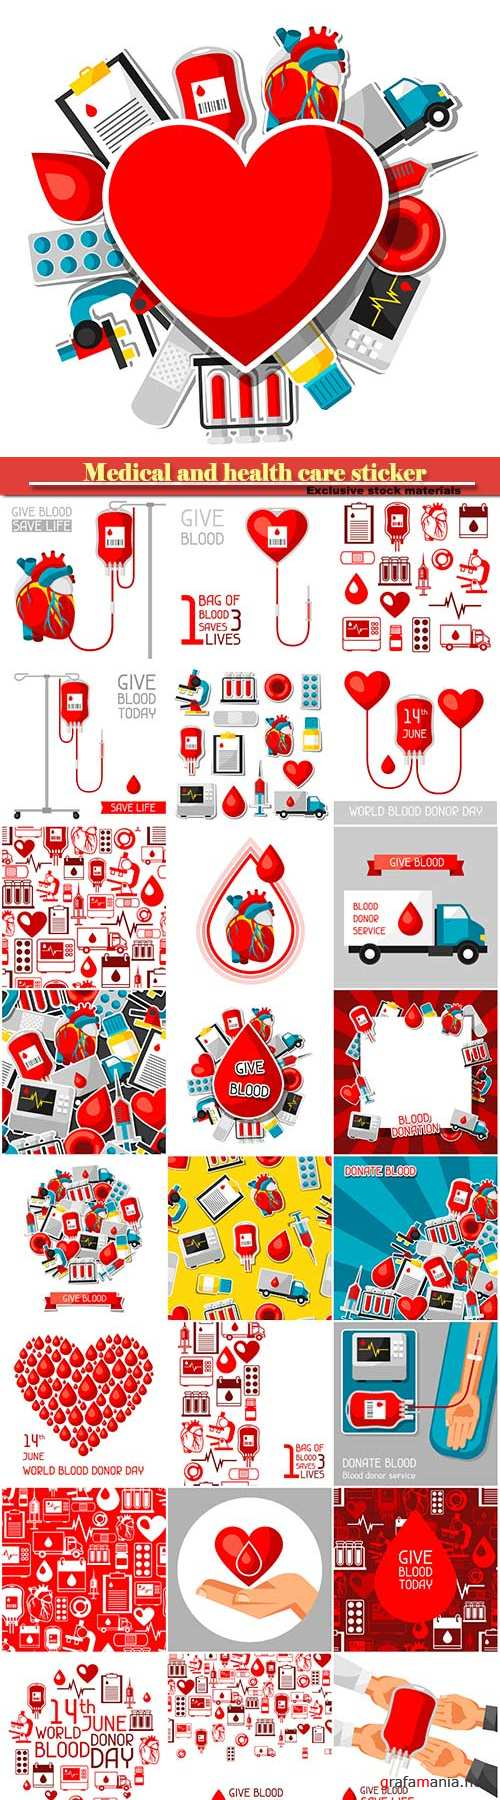 Medical and health care sticker objects, blood donation items